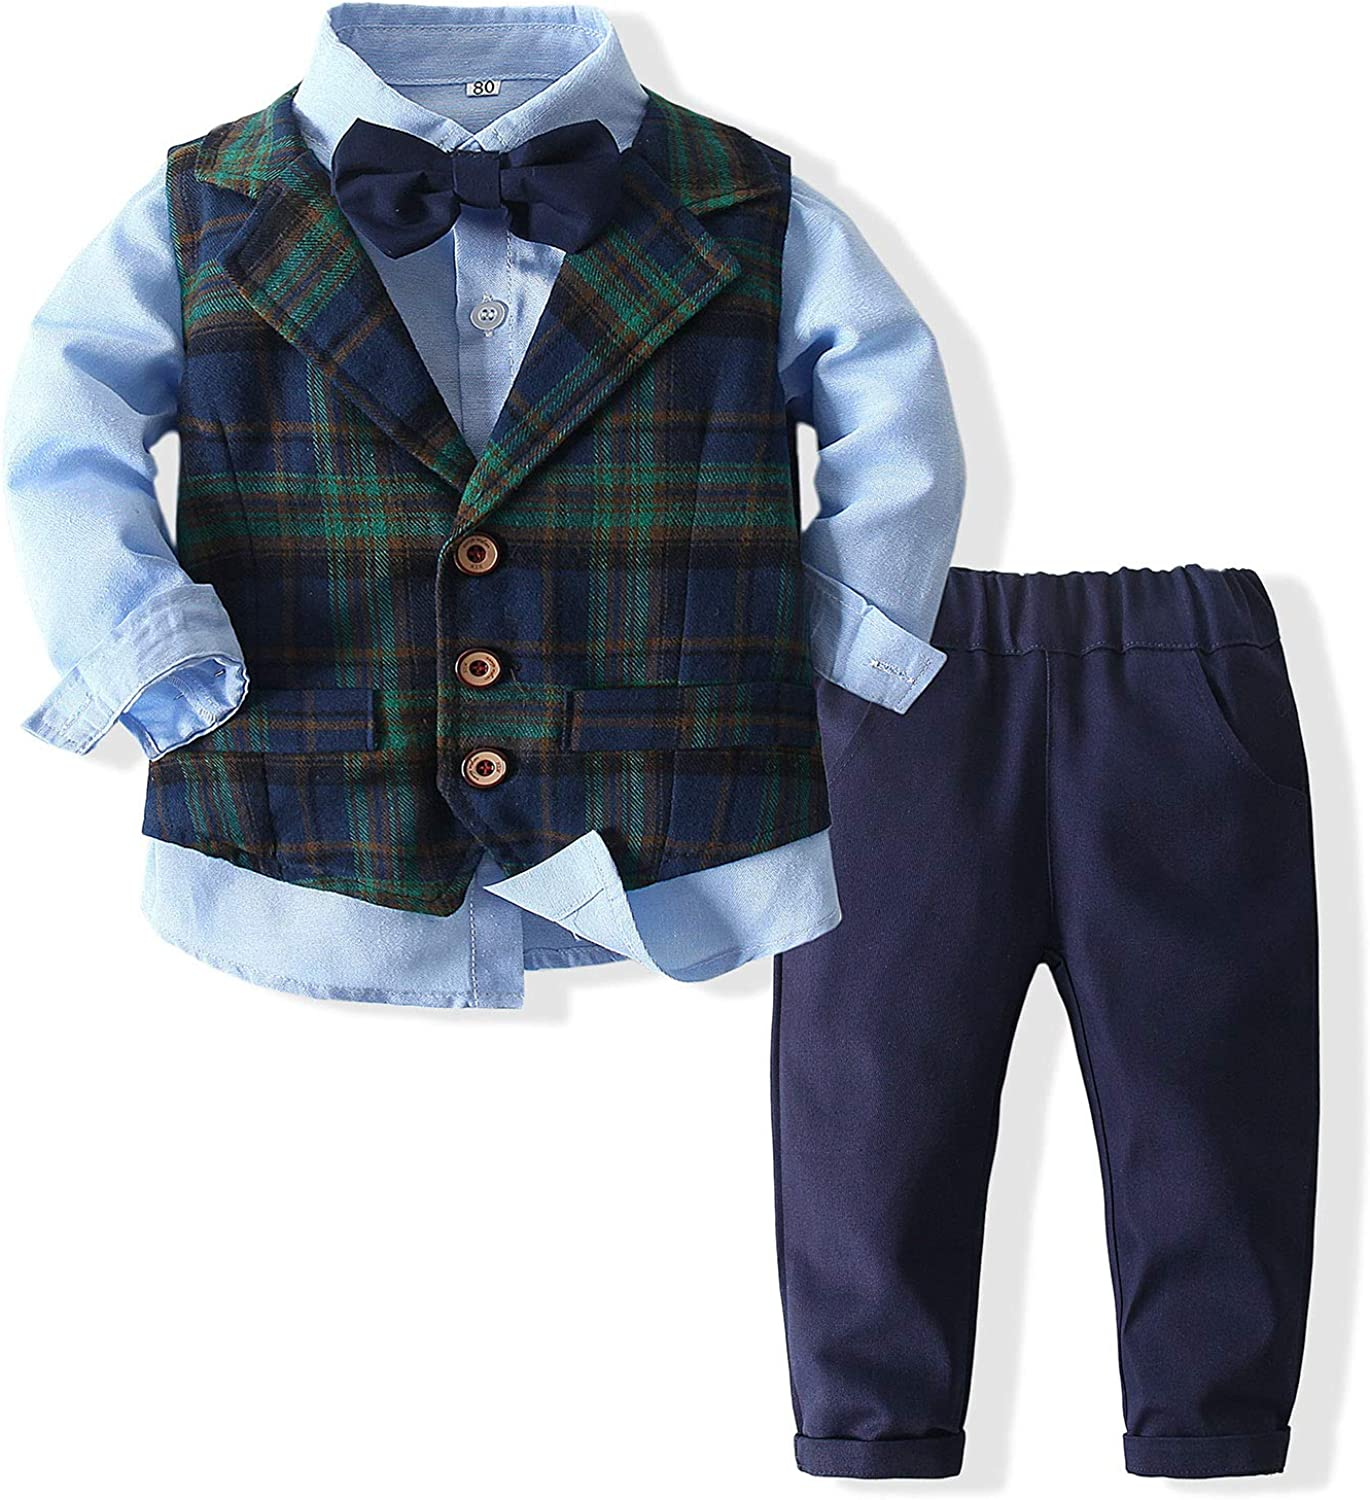 Baby Boys' Outfit Set with Dress Shirt, Vest, Pants, and Bow Tie Gentleman Easter Outfits Suit Set